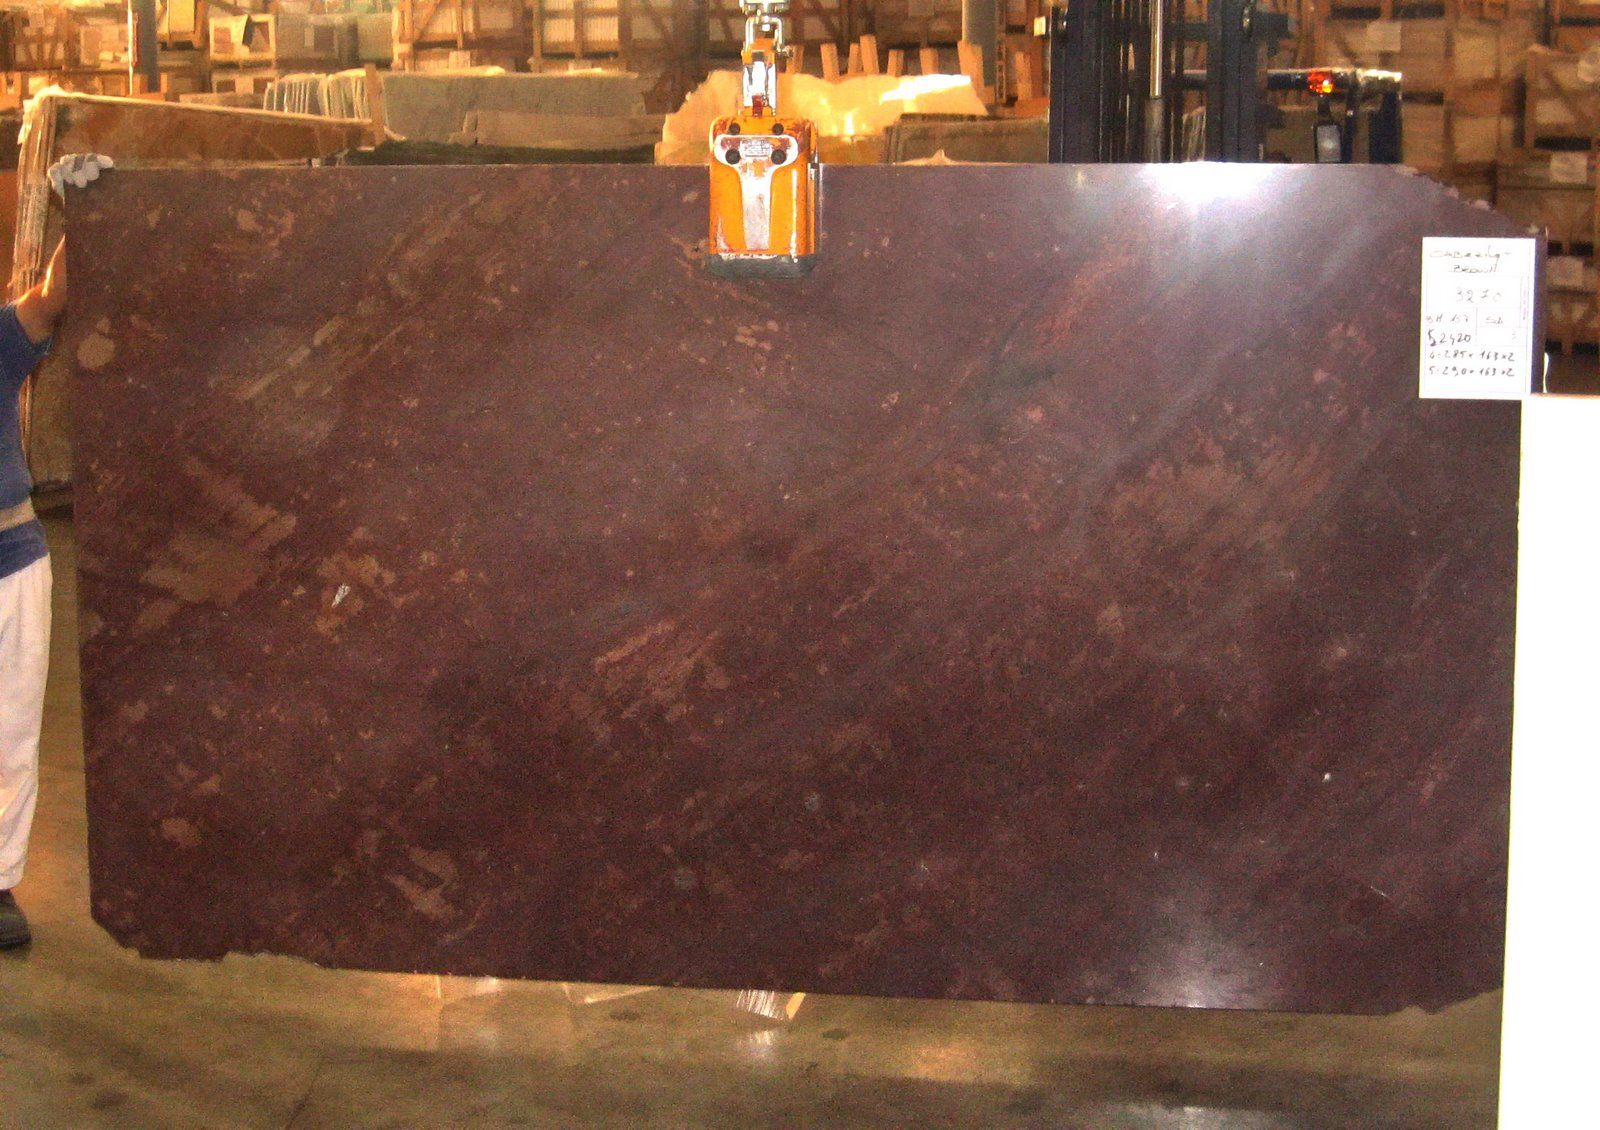 Bronzite Cabernet Brown Granite Slabs Are Available At Eskandari Stone. We Sell  Granite Countertops At